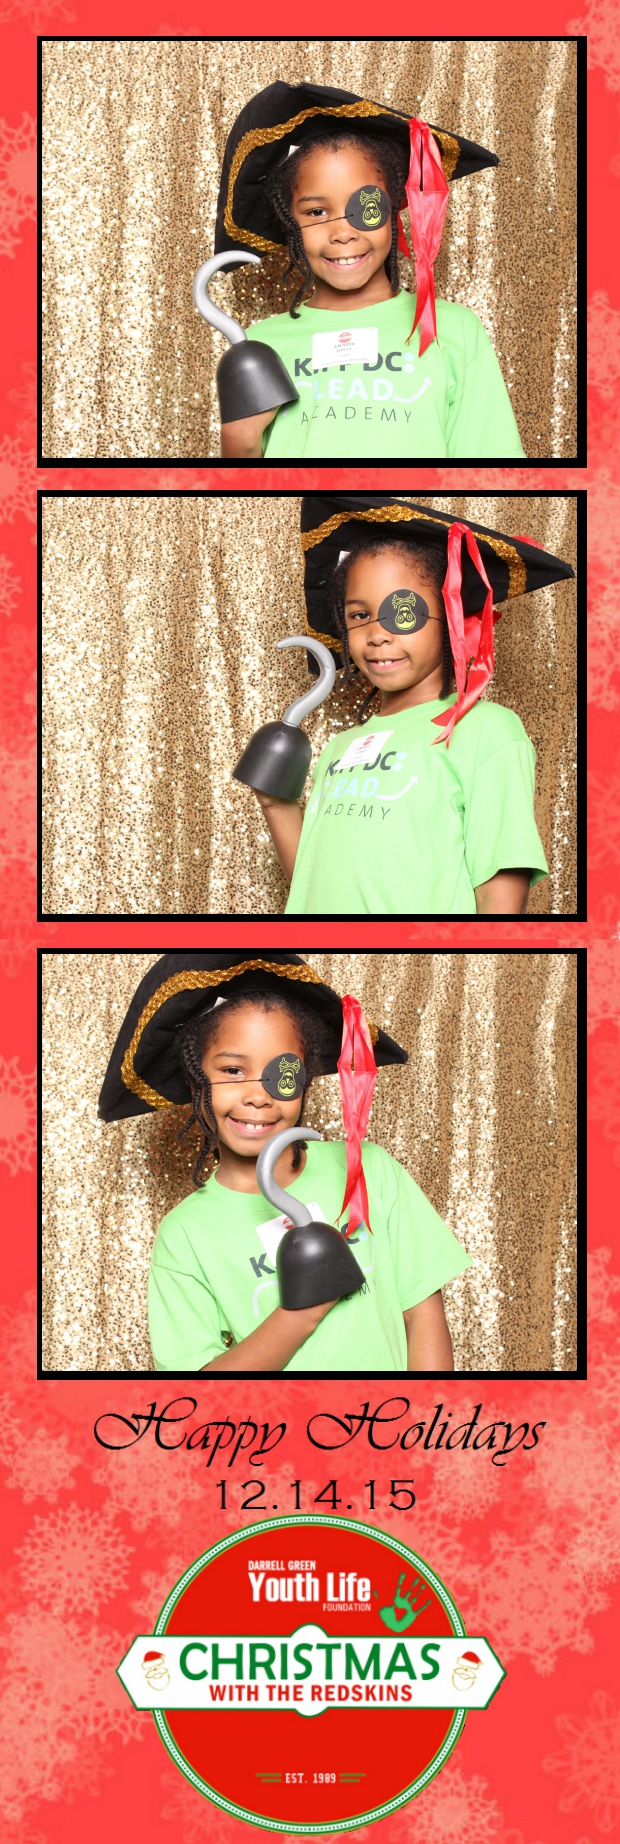 Guest House Events Photo Booth DGYLF Strips (28).jpg